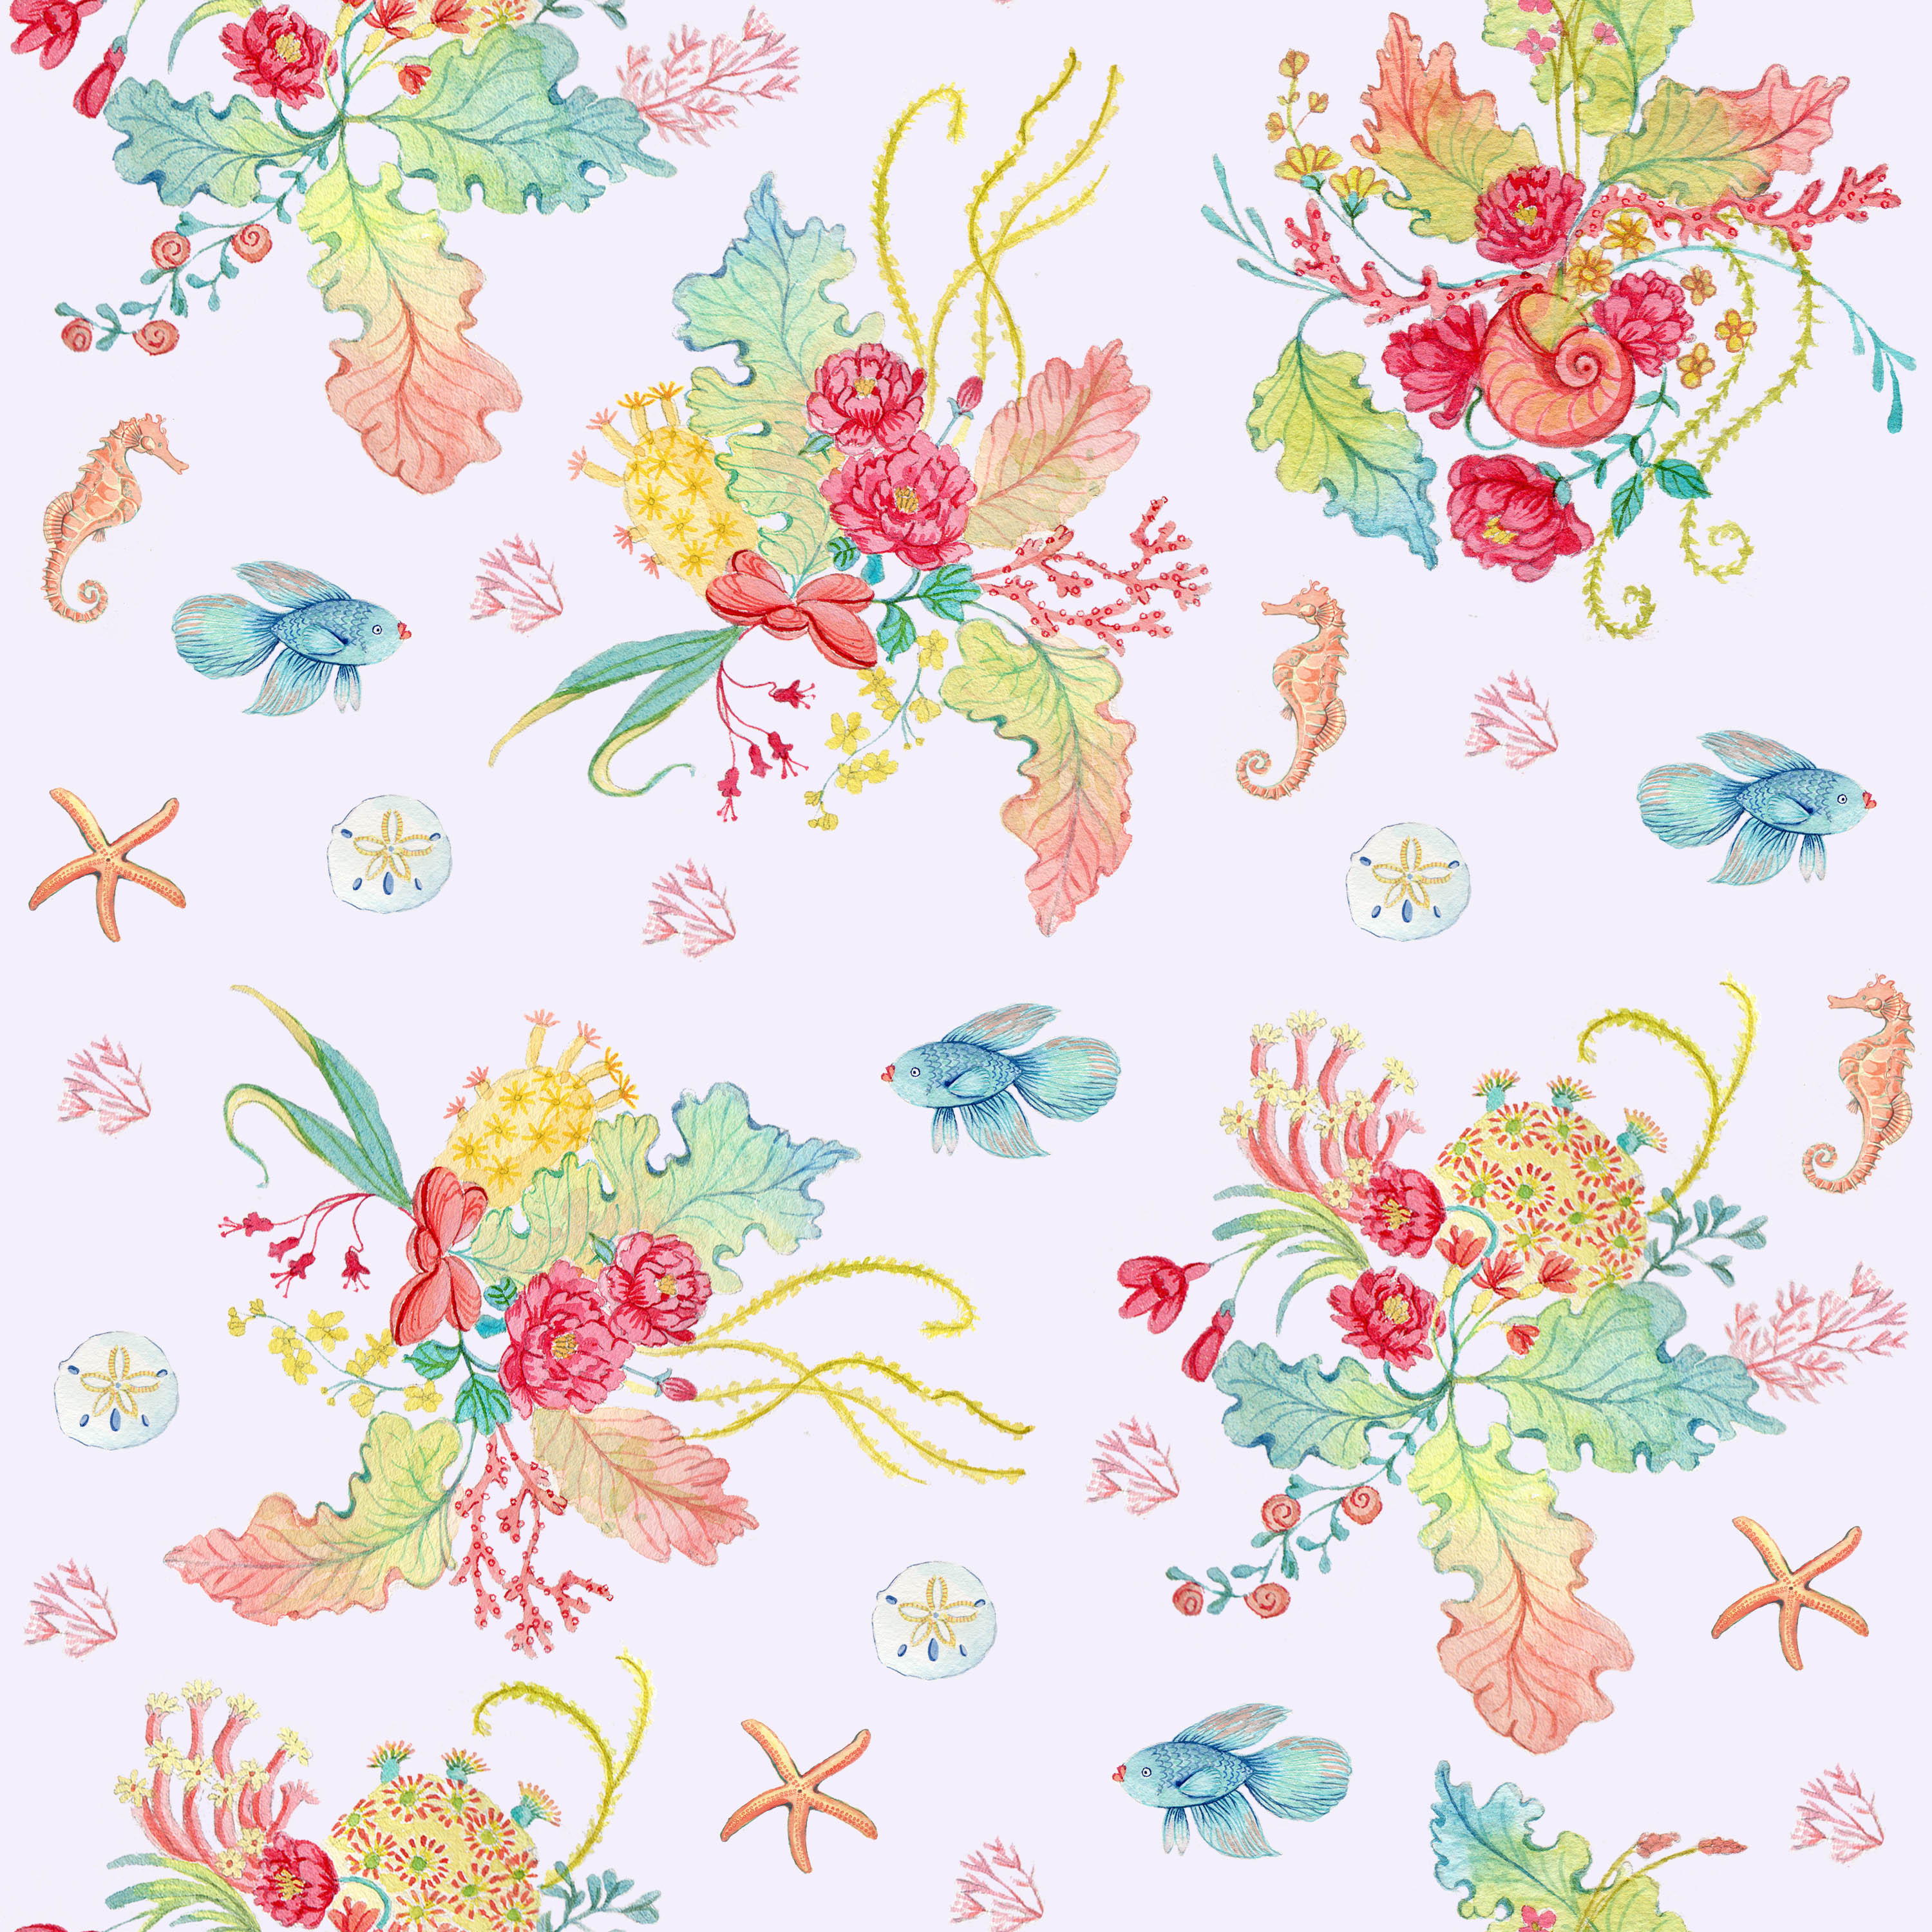 Blog - Sea Florals: The Making Of